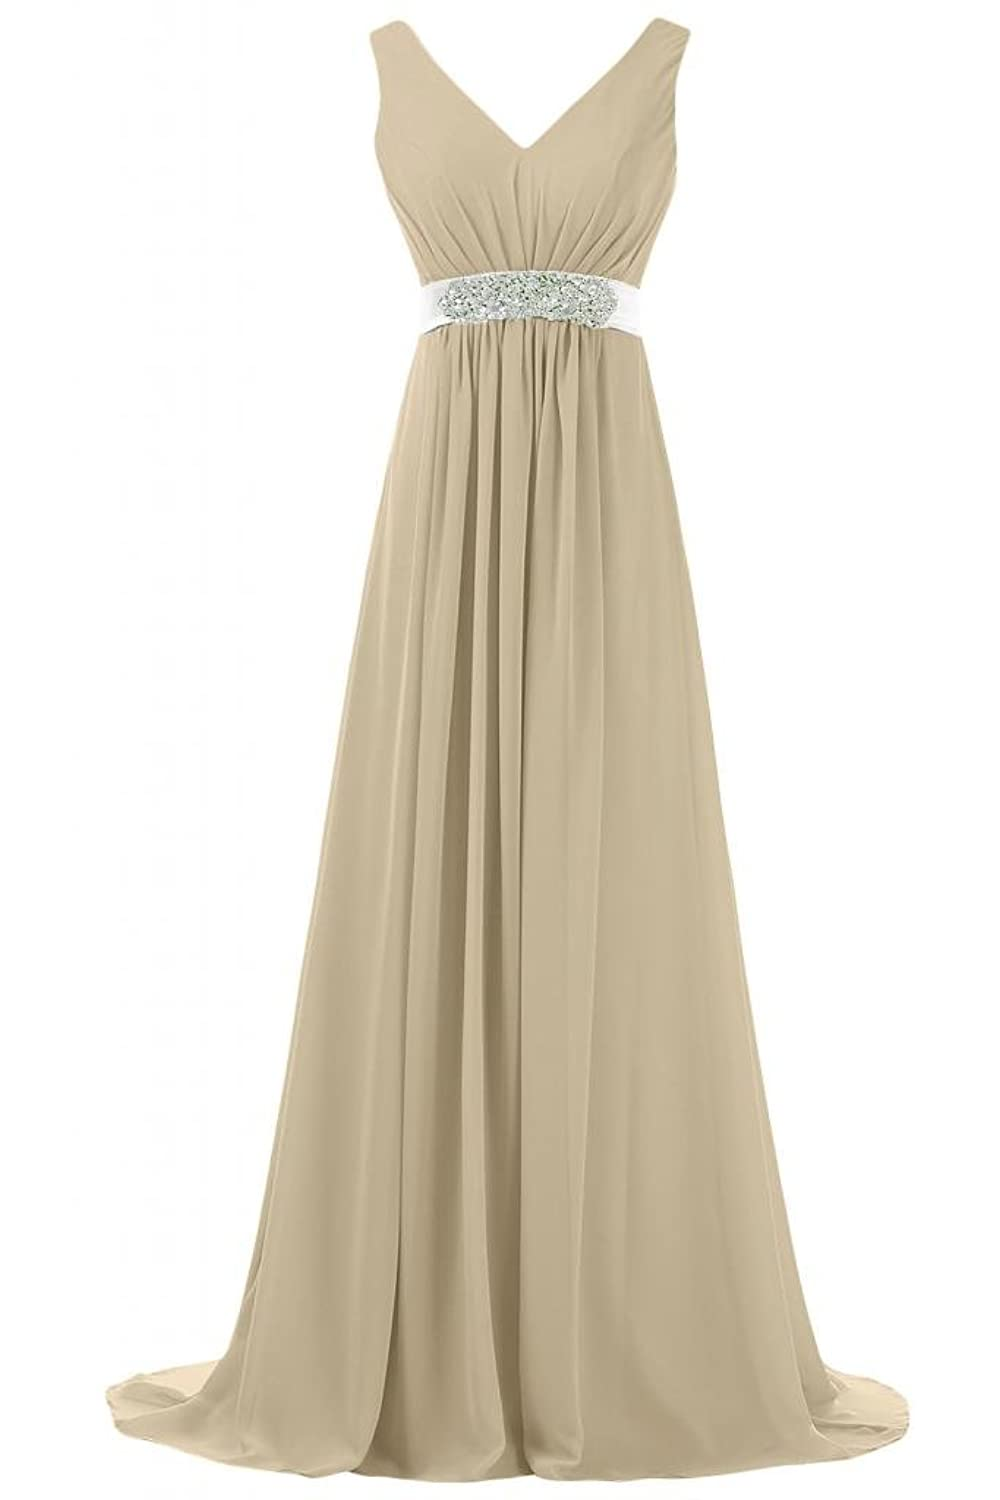 Sunvary Elegant V-neck Prom Dress Pageant Gowns Maxi Evening Dresses for Mother